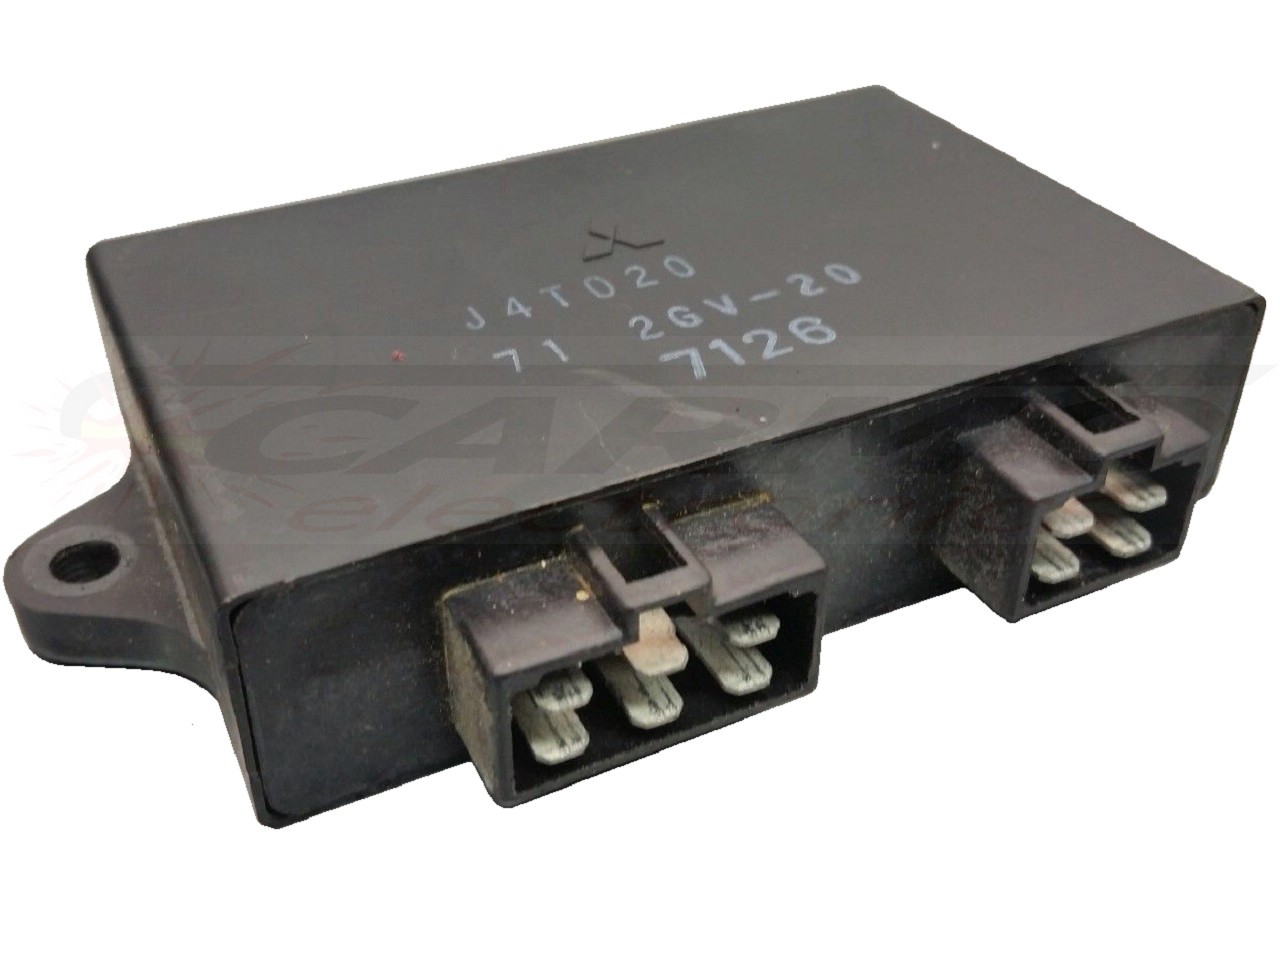 xv535 virago tci cdi unit ecu ontsteking j4t020 2gv 20. Black Bedroom Furniture Sets. Home Design Ideas